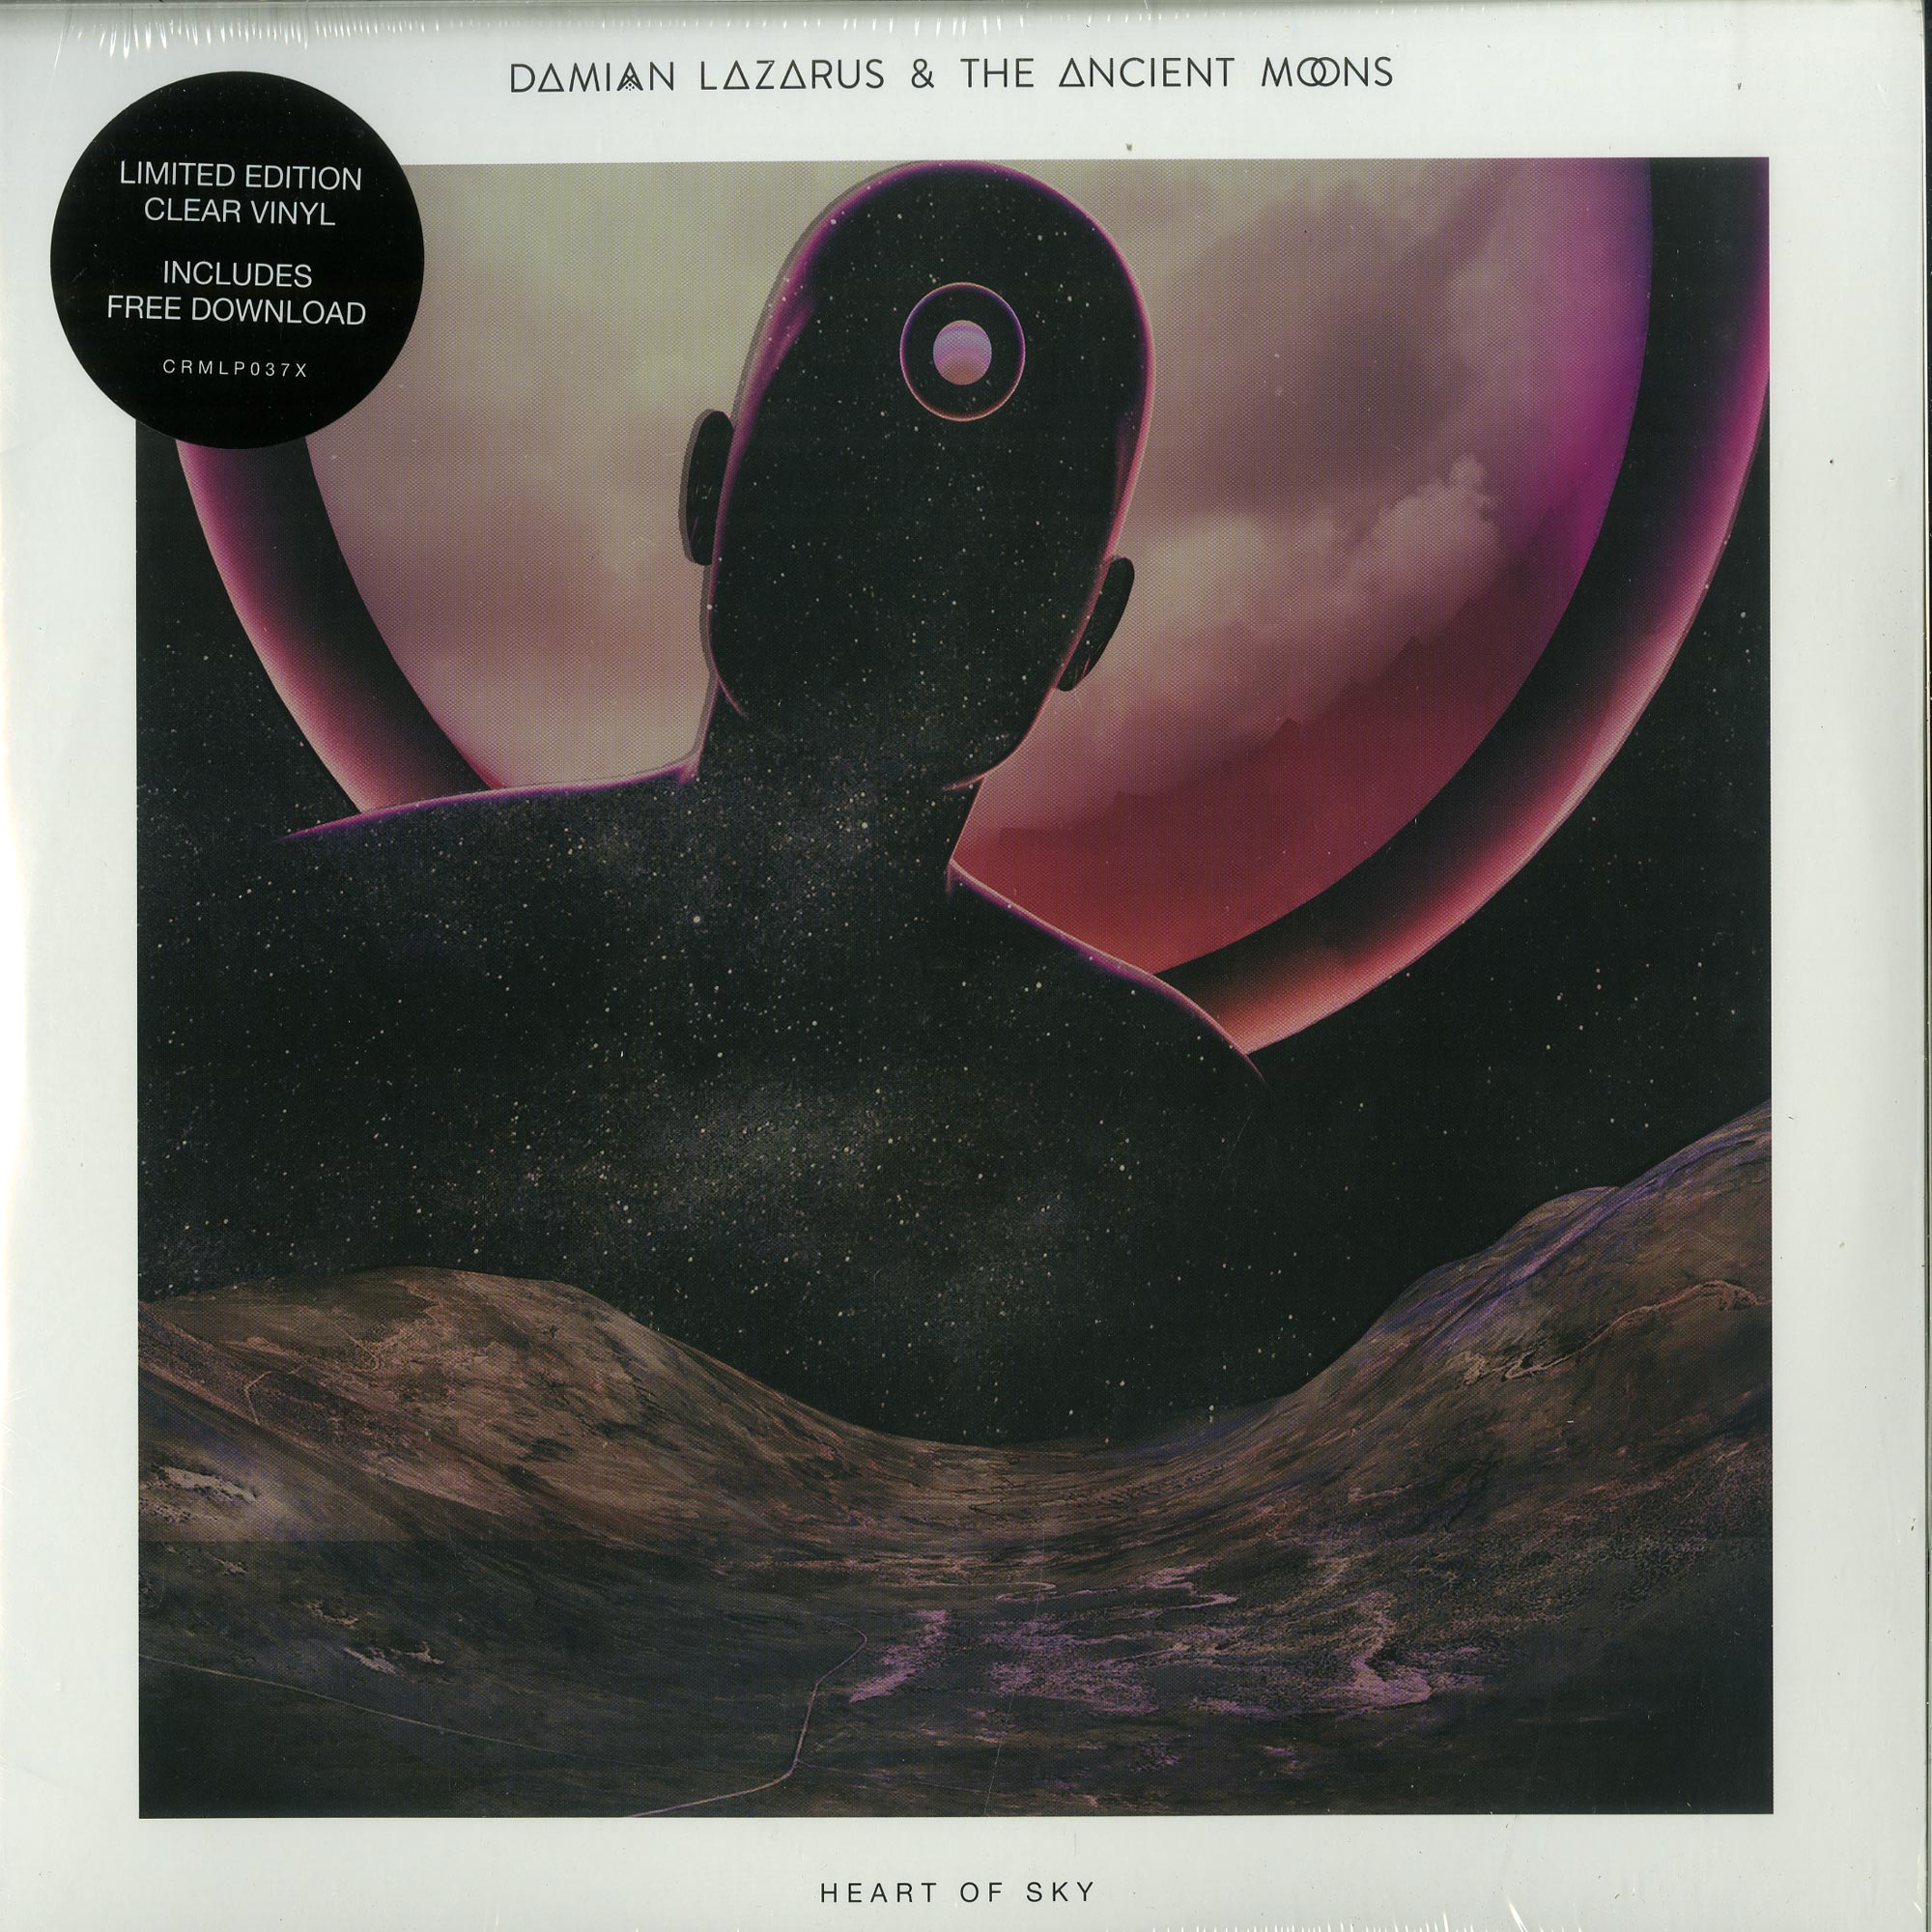 Damian Lazarus & The Ancient Moons - HEART OF SKY